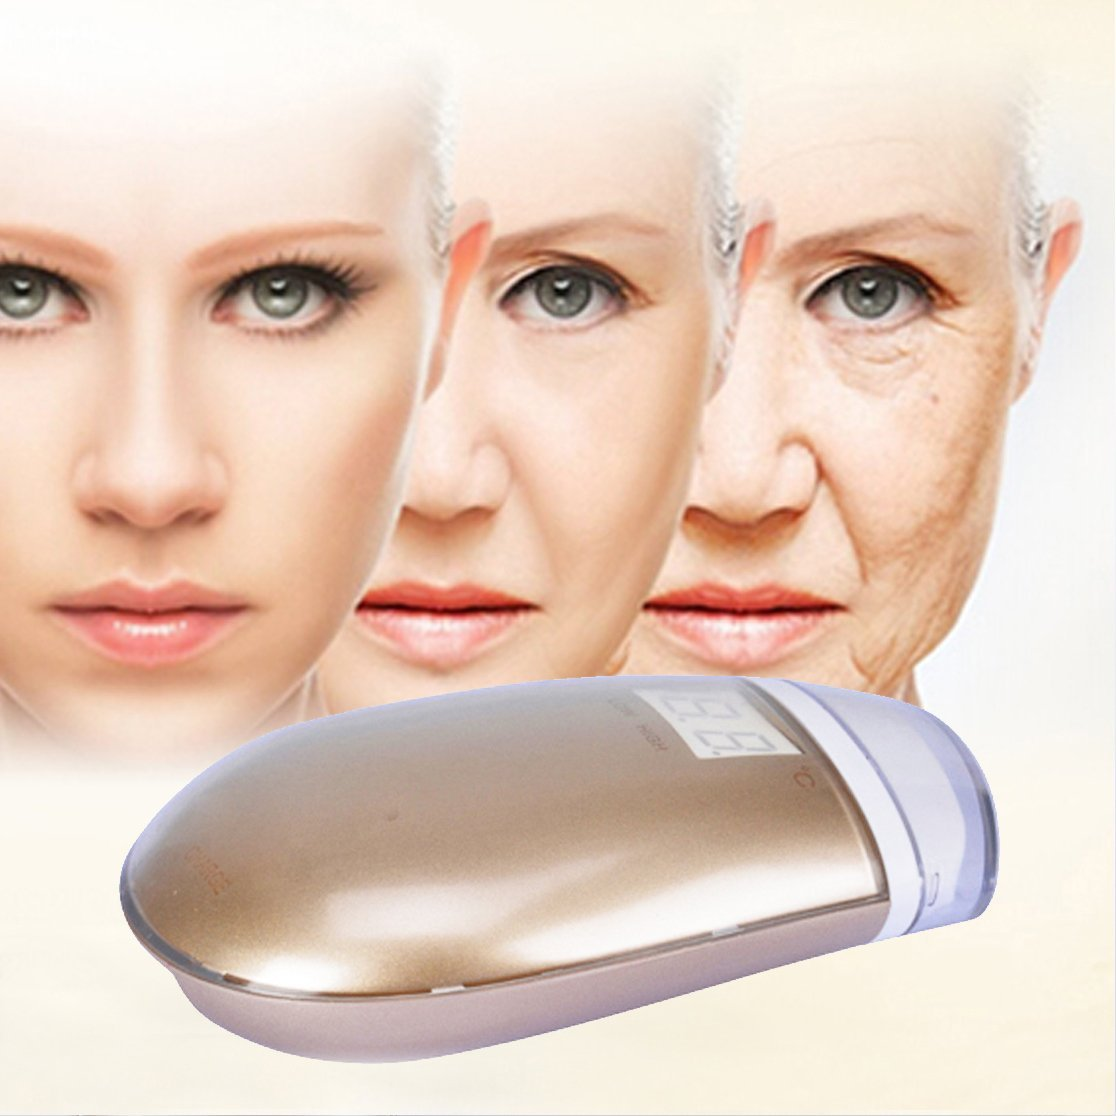 Radiofrequency Face Lift Beauty Wrinkle Remover Anti-Aging Radiofrequency Skin Tightening Beauty and Body Weight Loss device home travel use iontophoresis ems stimulator anti aging anti wrinkle face eye lift skin tightening firming beauty instrument